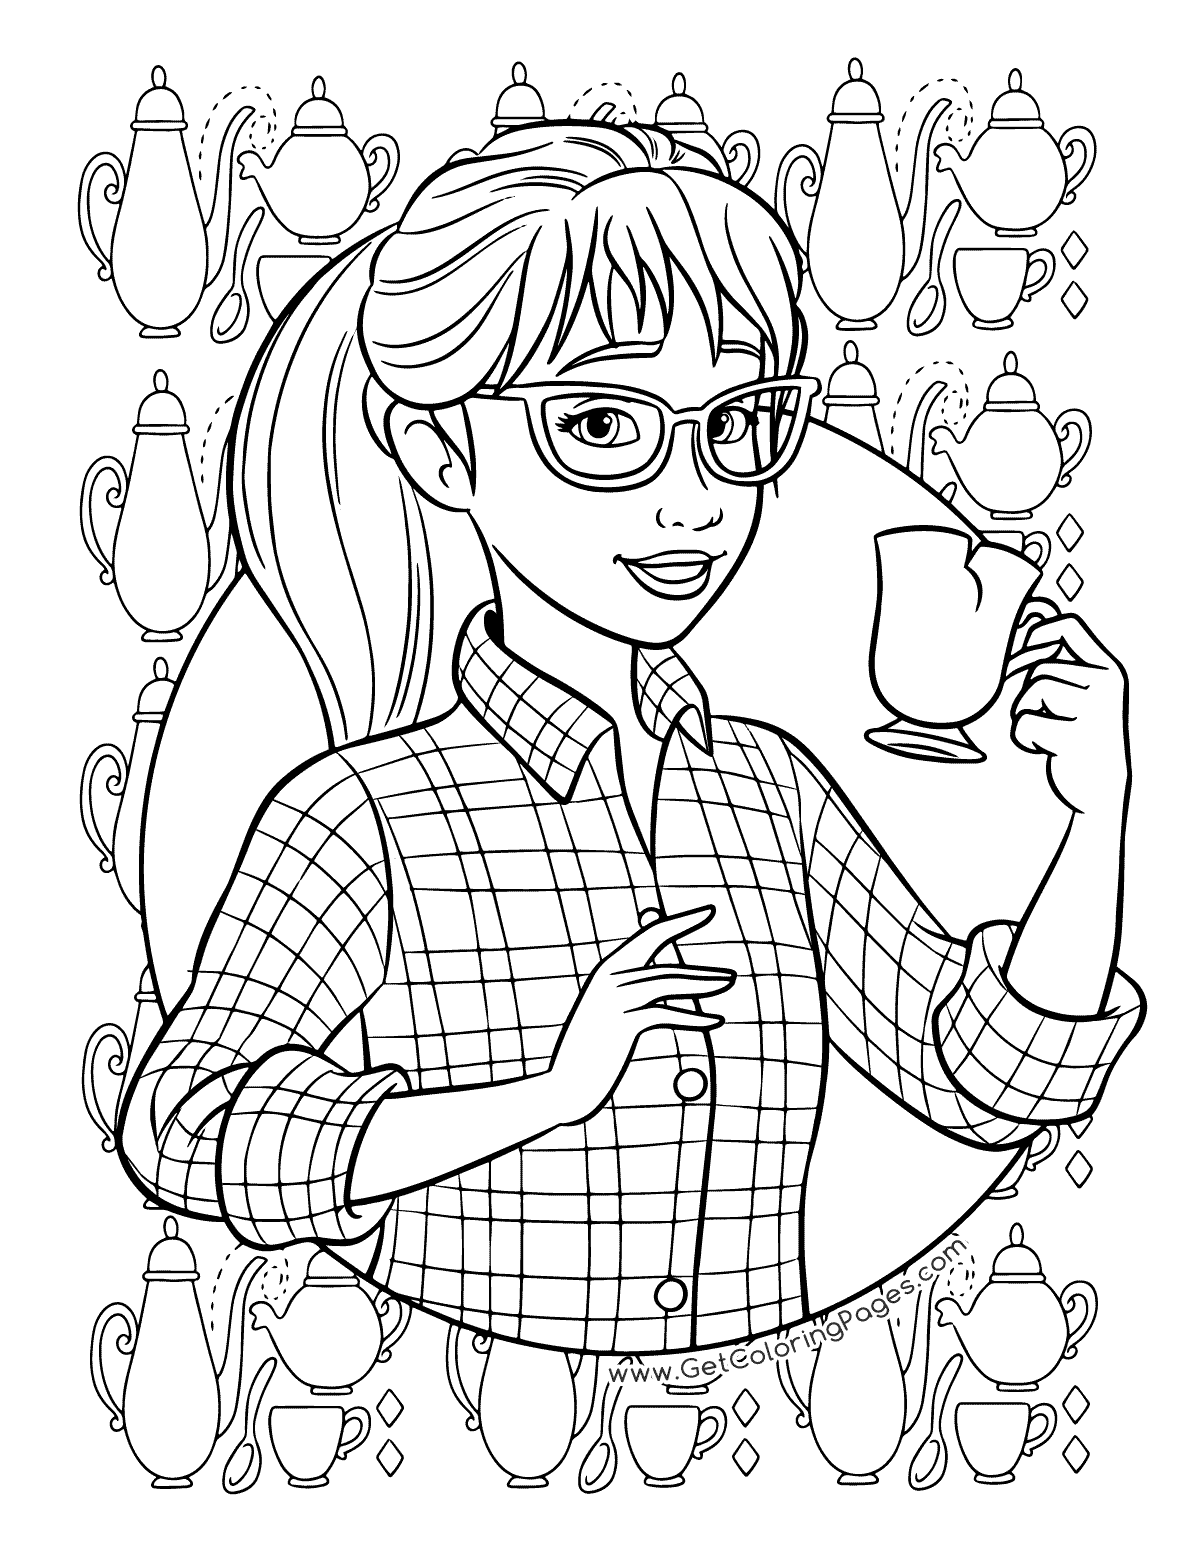 Pin By Roachella Marquez On Dj Coloring Books Barbie Coloring Pages Coloring Pages For Girls